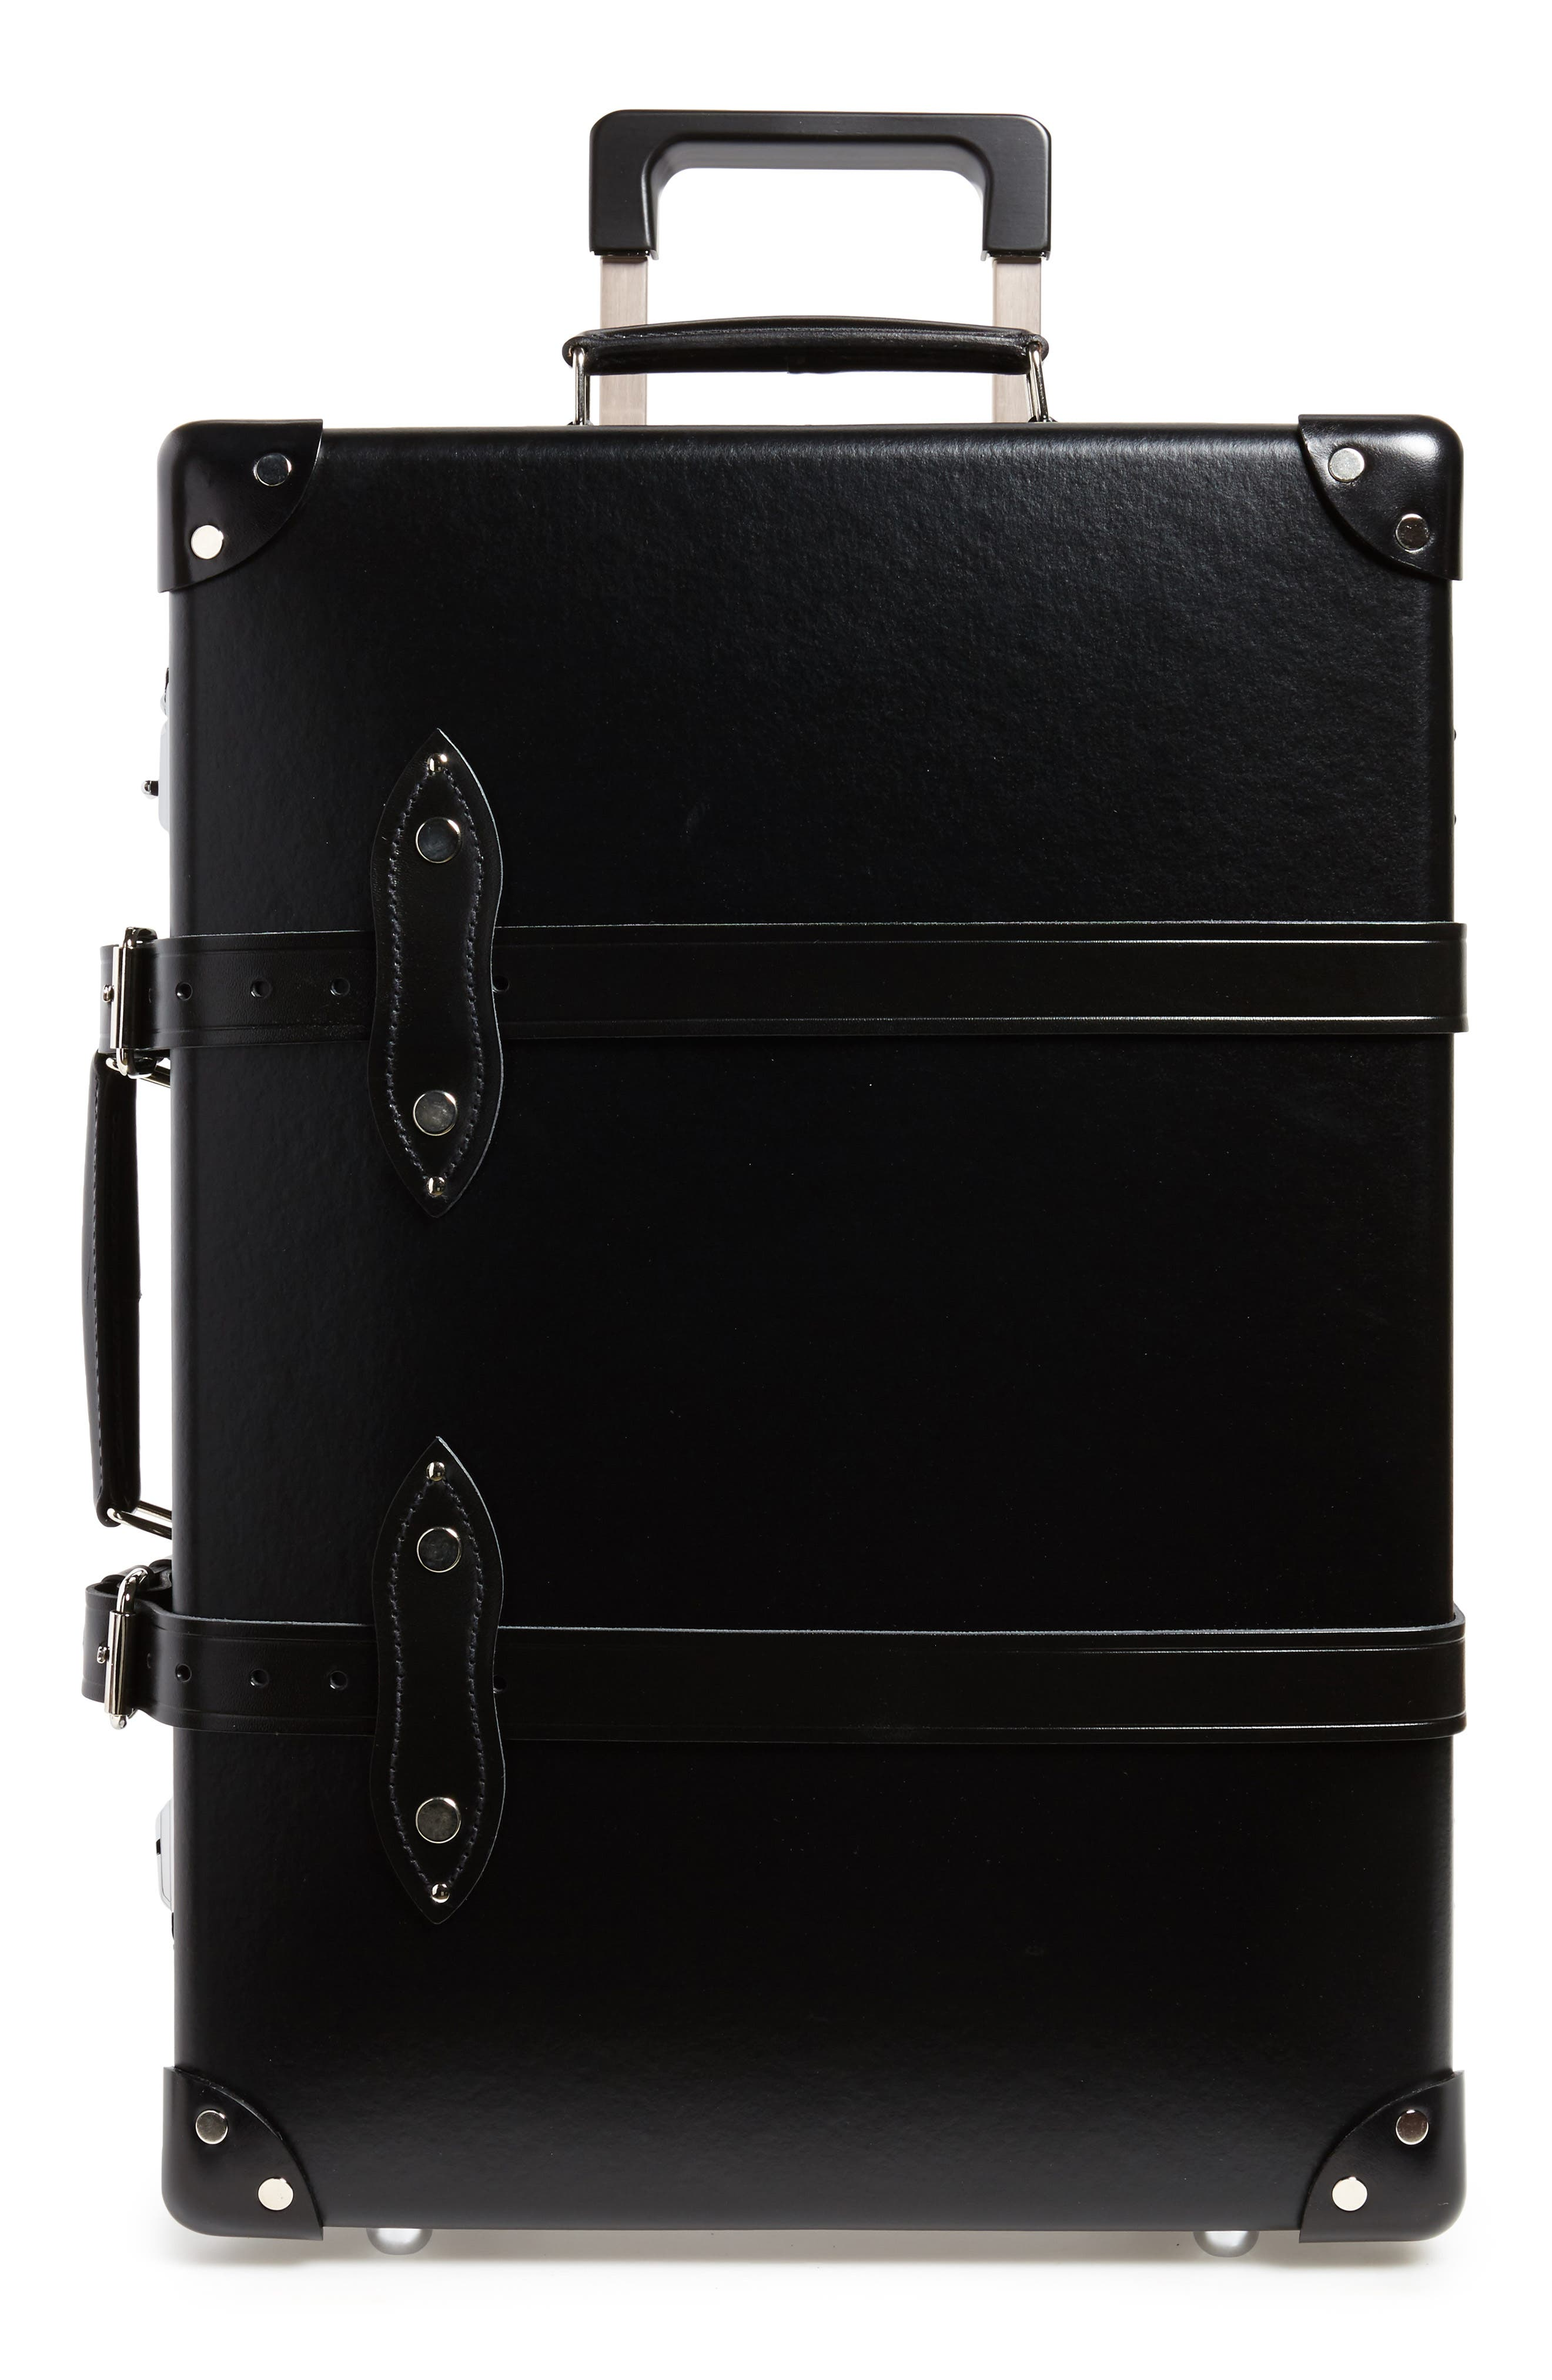 Centenary 21-Inch Hardshell Travel Trolley Case,                         Main,                         color, Black/ Black